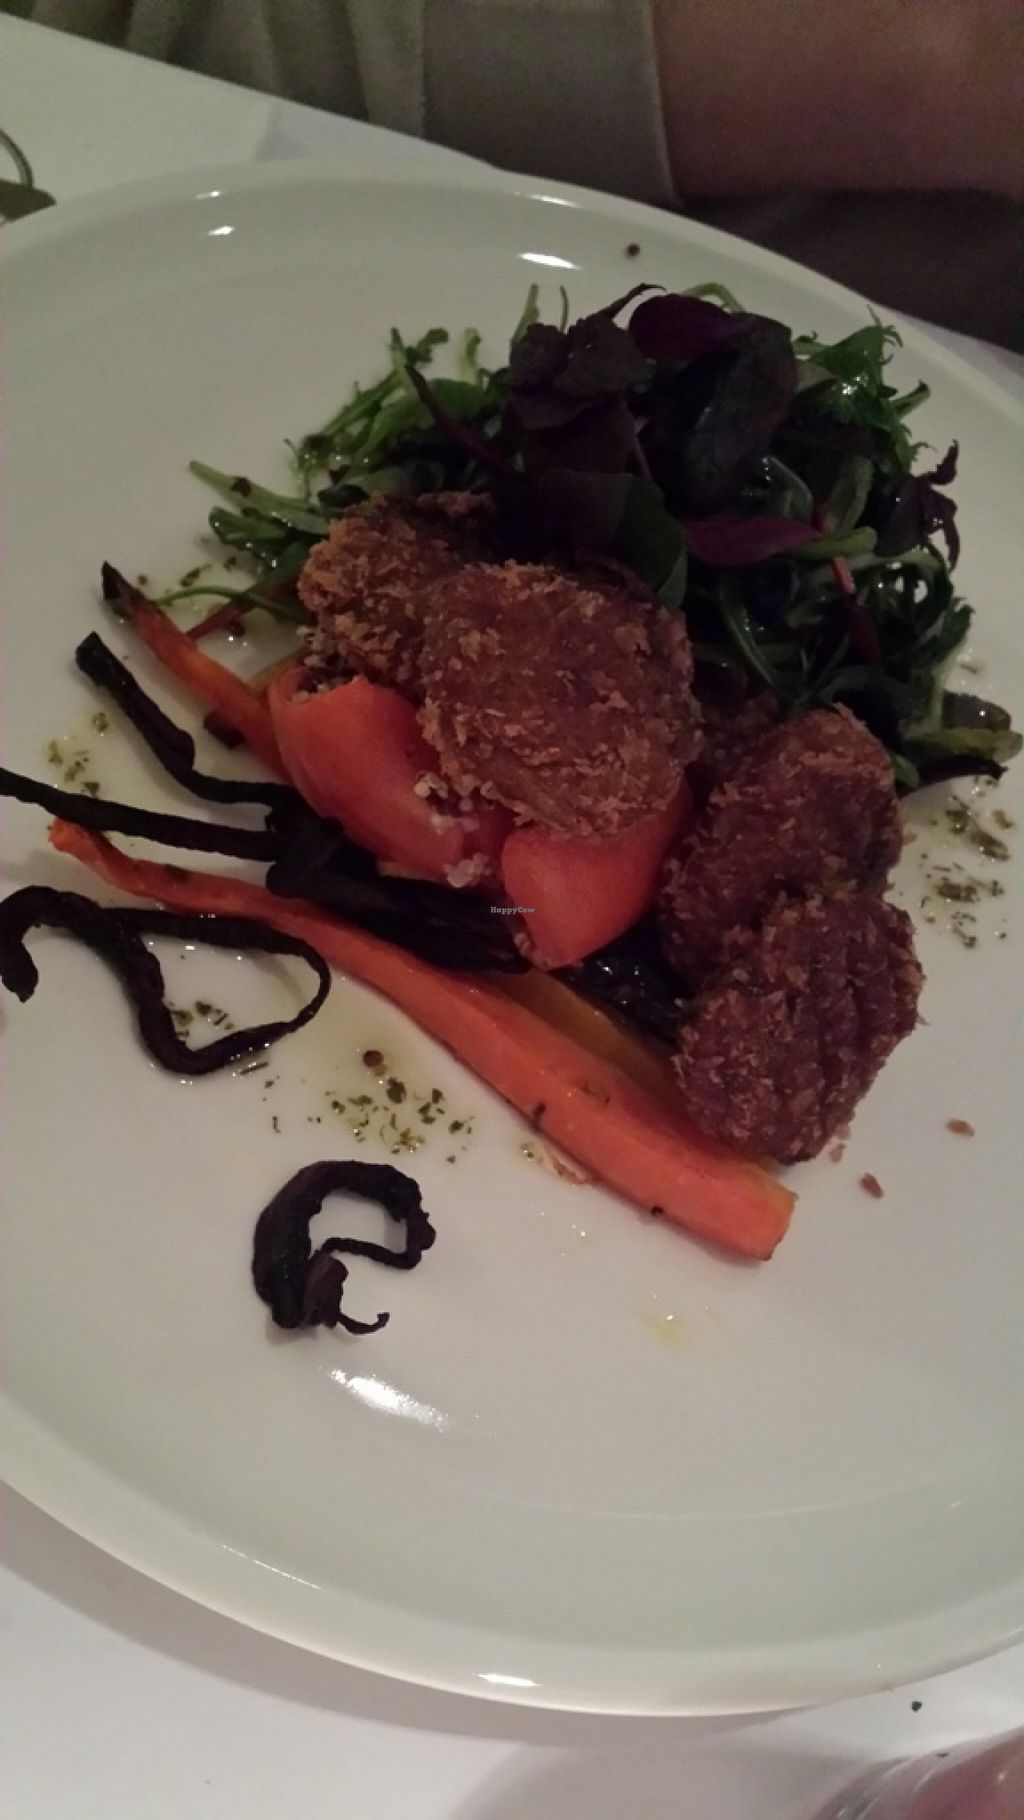 """Photo of CLOSED: Green House Kitchen  by <a href=""""/members/profile/kathyv181"""">kathyv181</a> <br/>falafel salad <br/> January 3, 2016  - <a href='/contact/abuse/image/67864/130933'>Report</a>"""